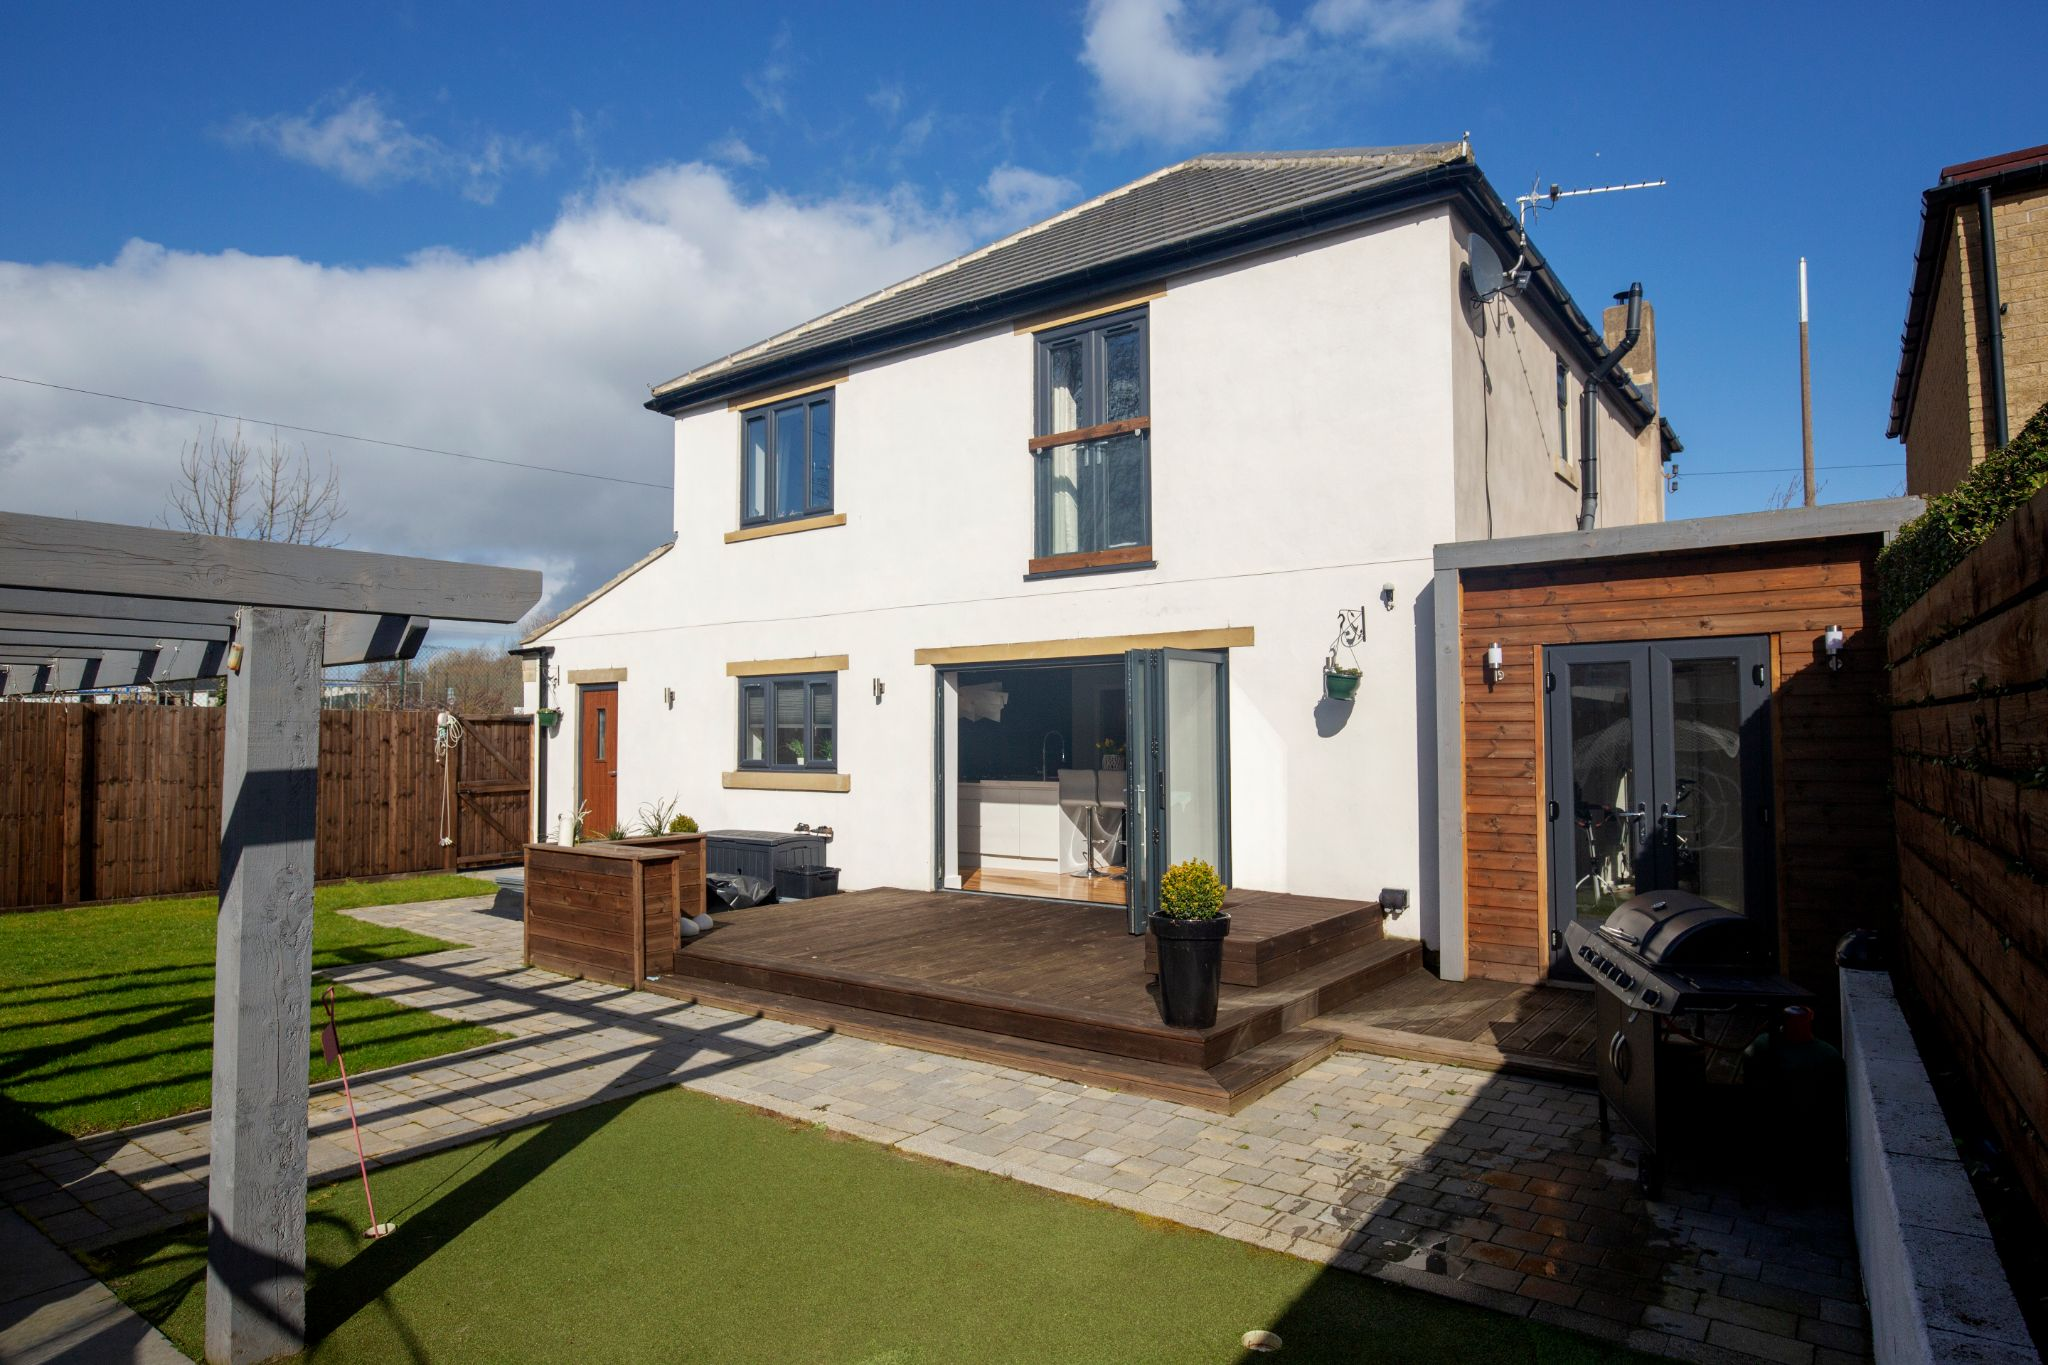 4 bedroom detached house Sale Agreed in Brighouse - Rear elevation and garden